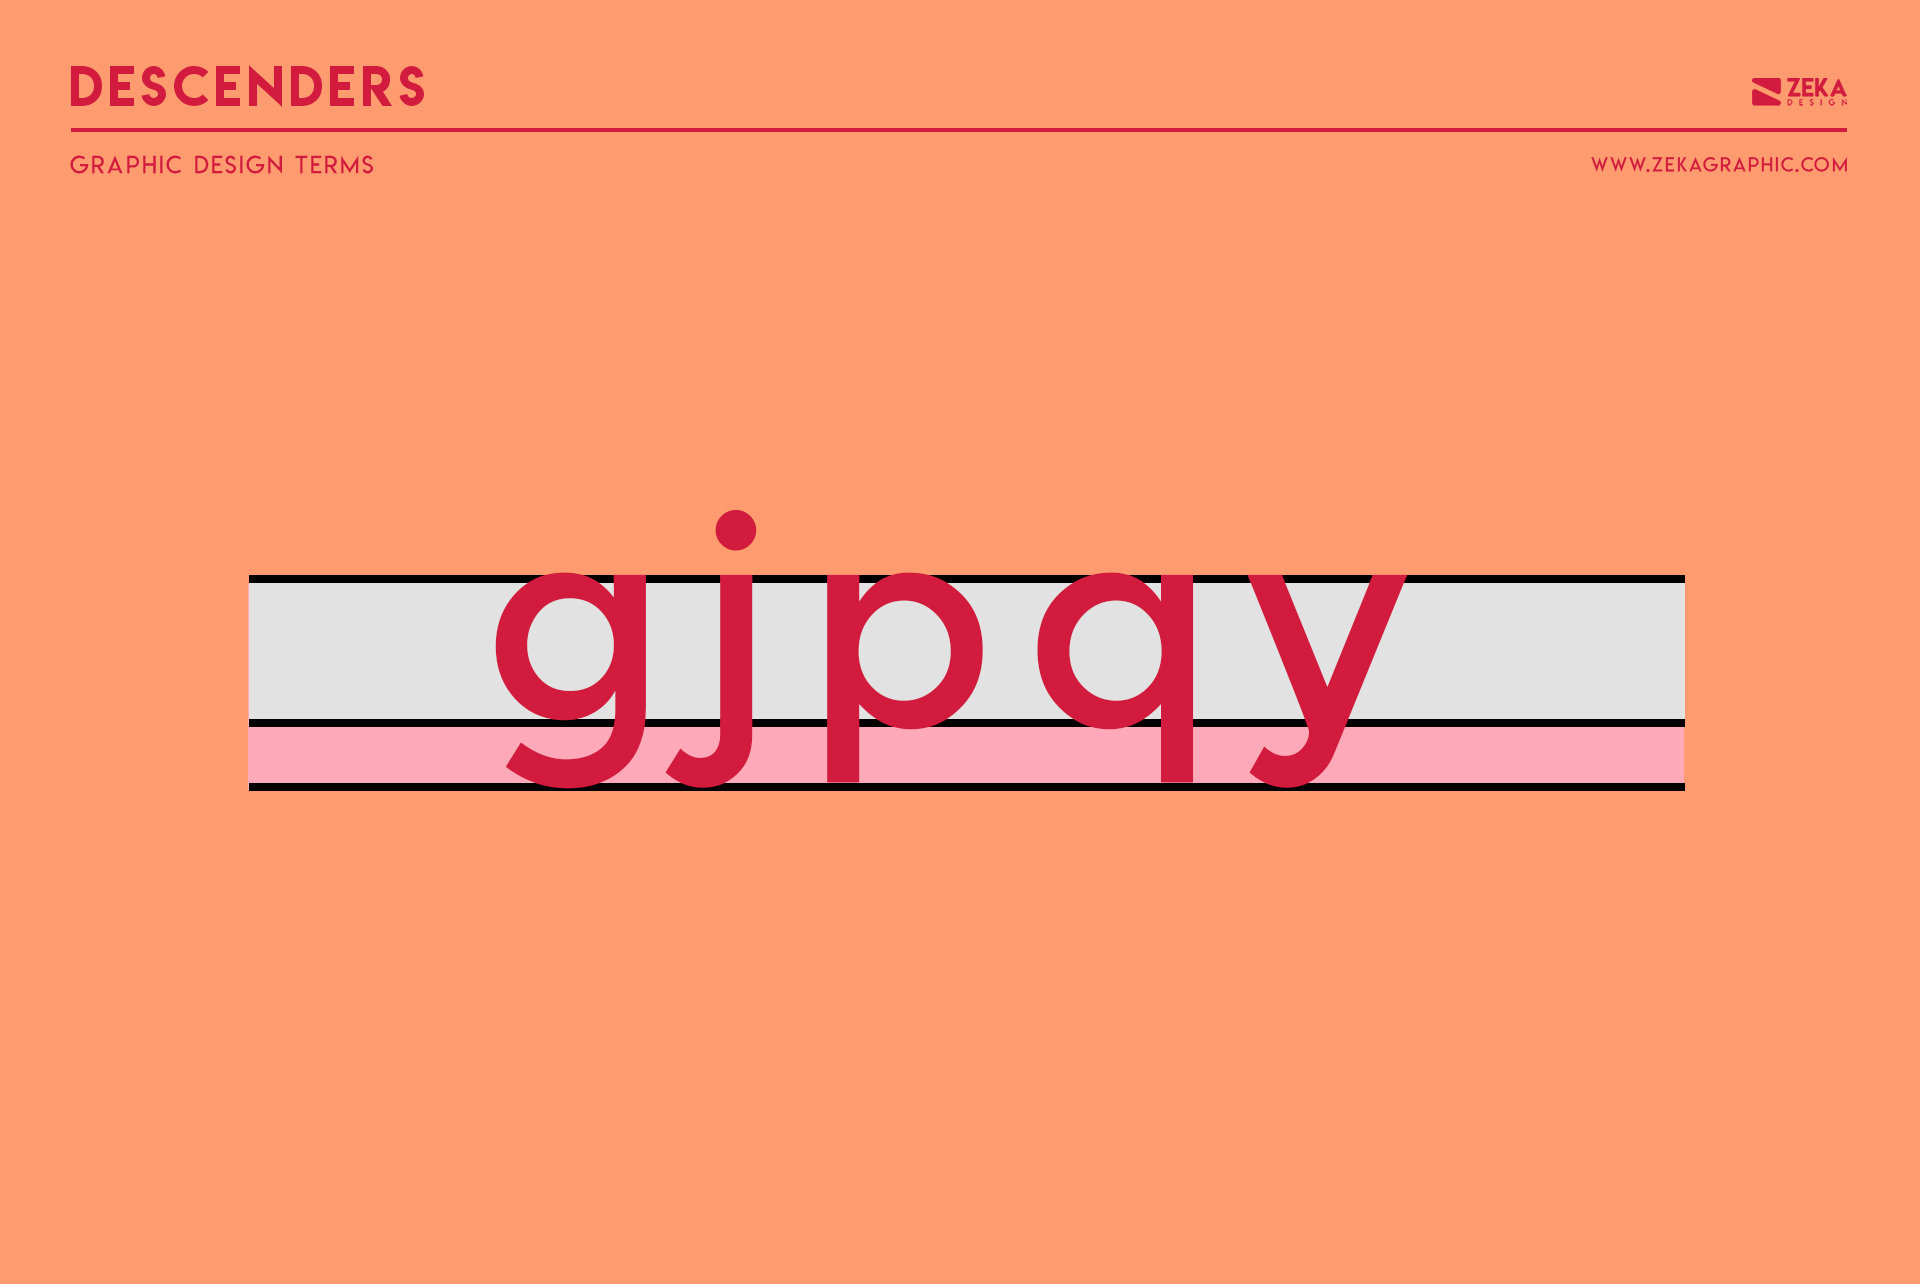 Descenders Graphic Design Terms about Typography